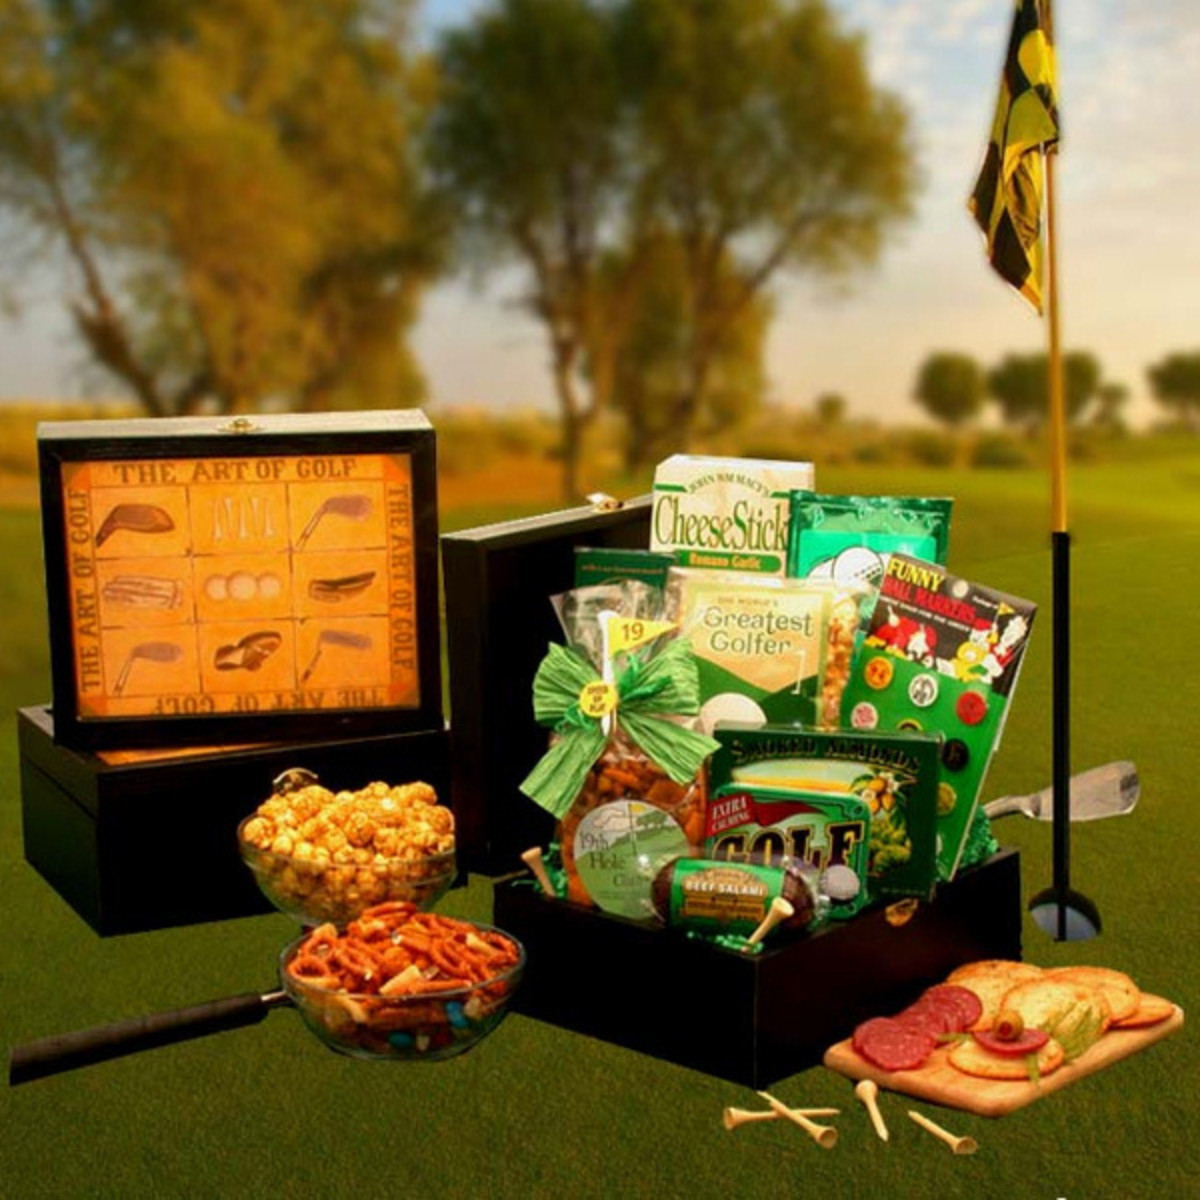 Golfers Deluxe Gift Box